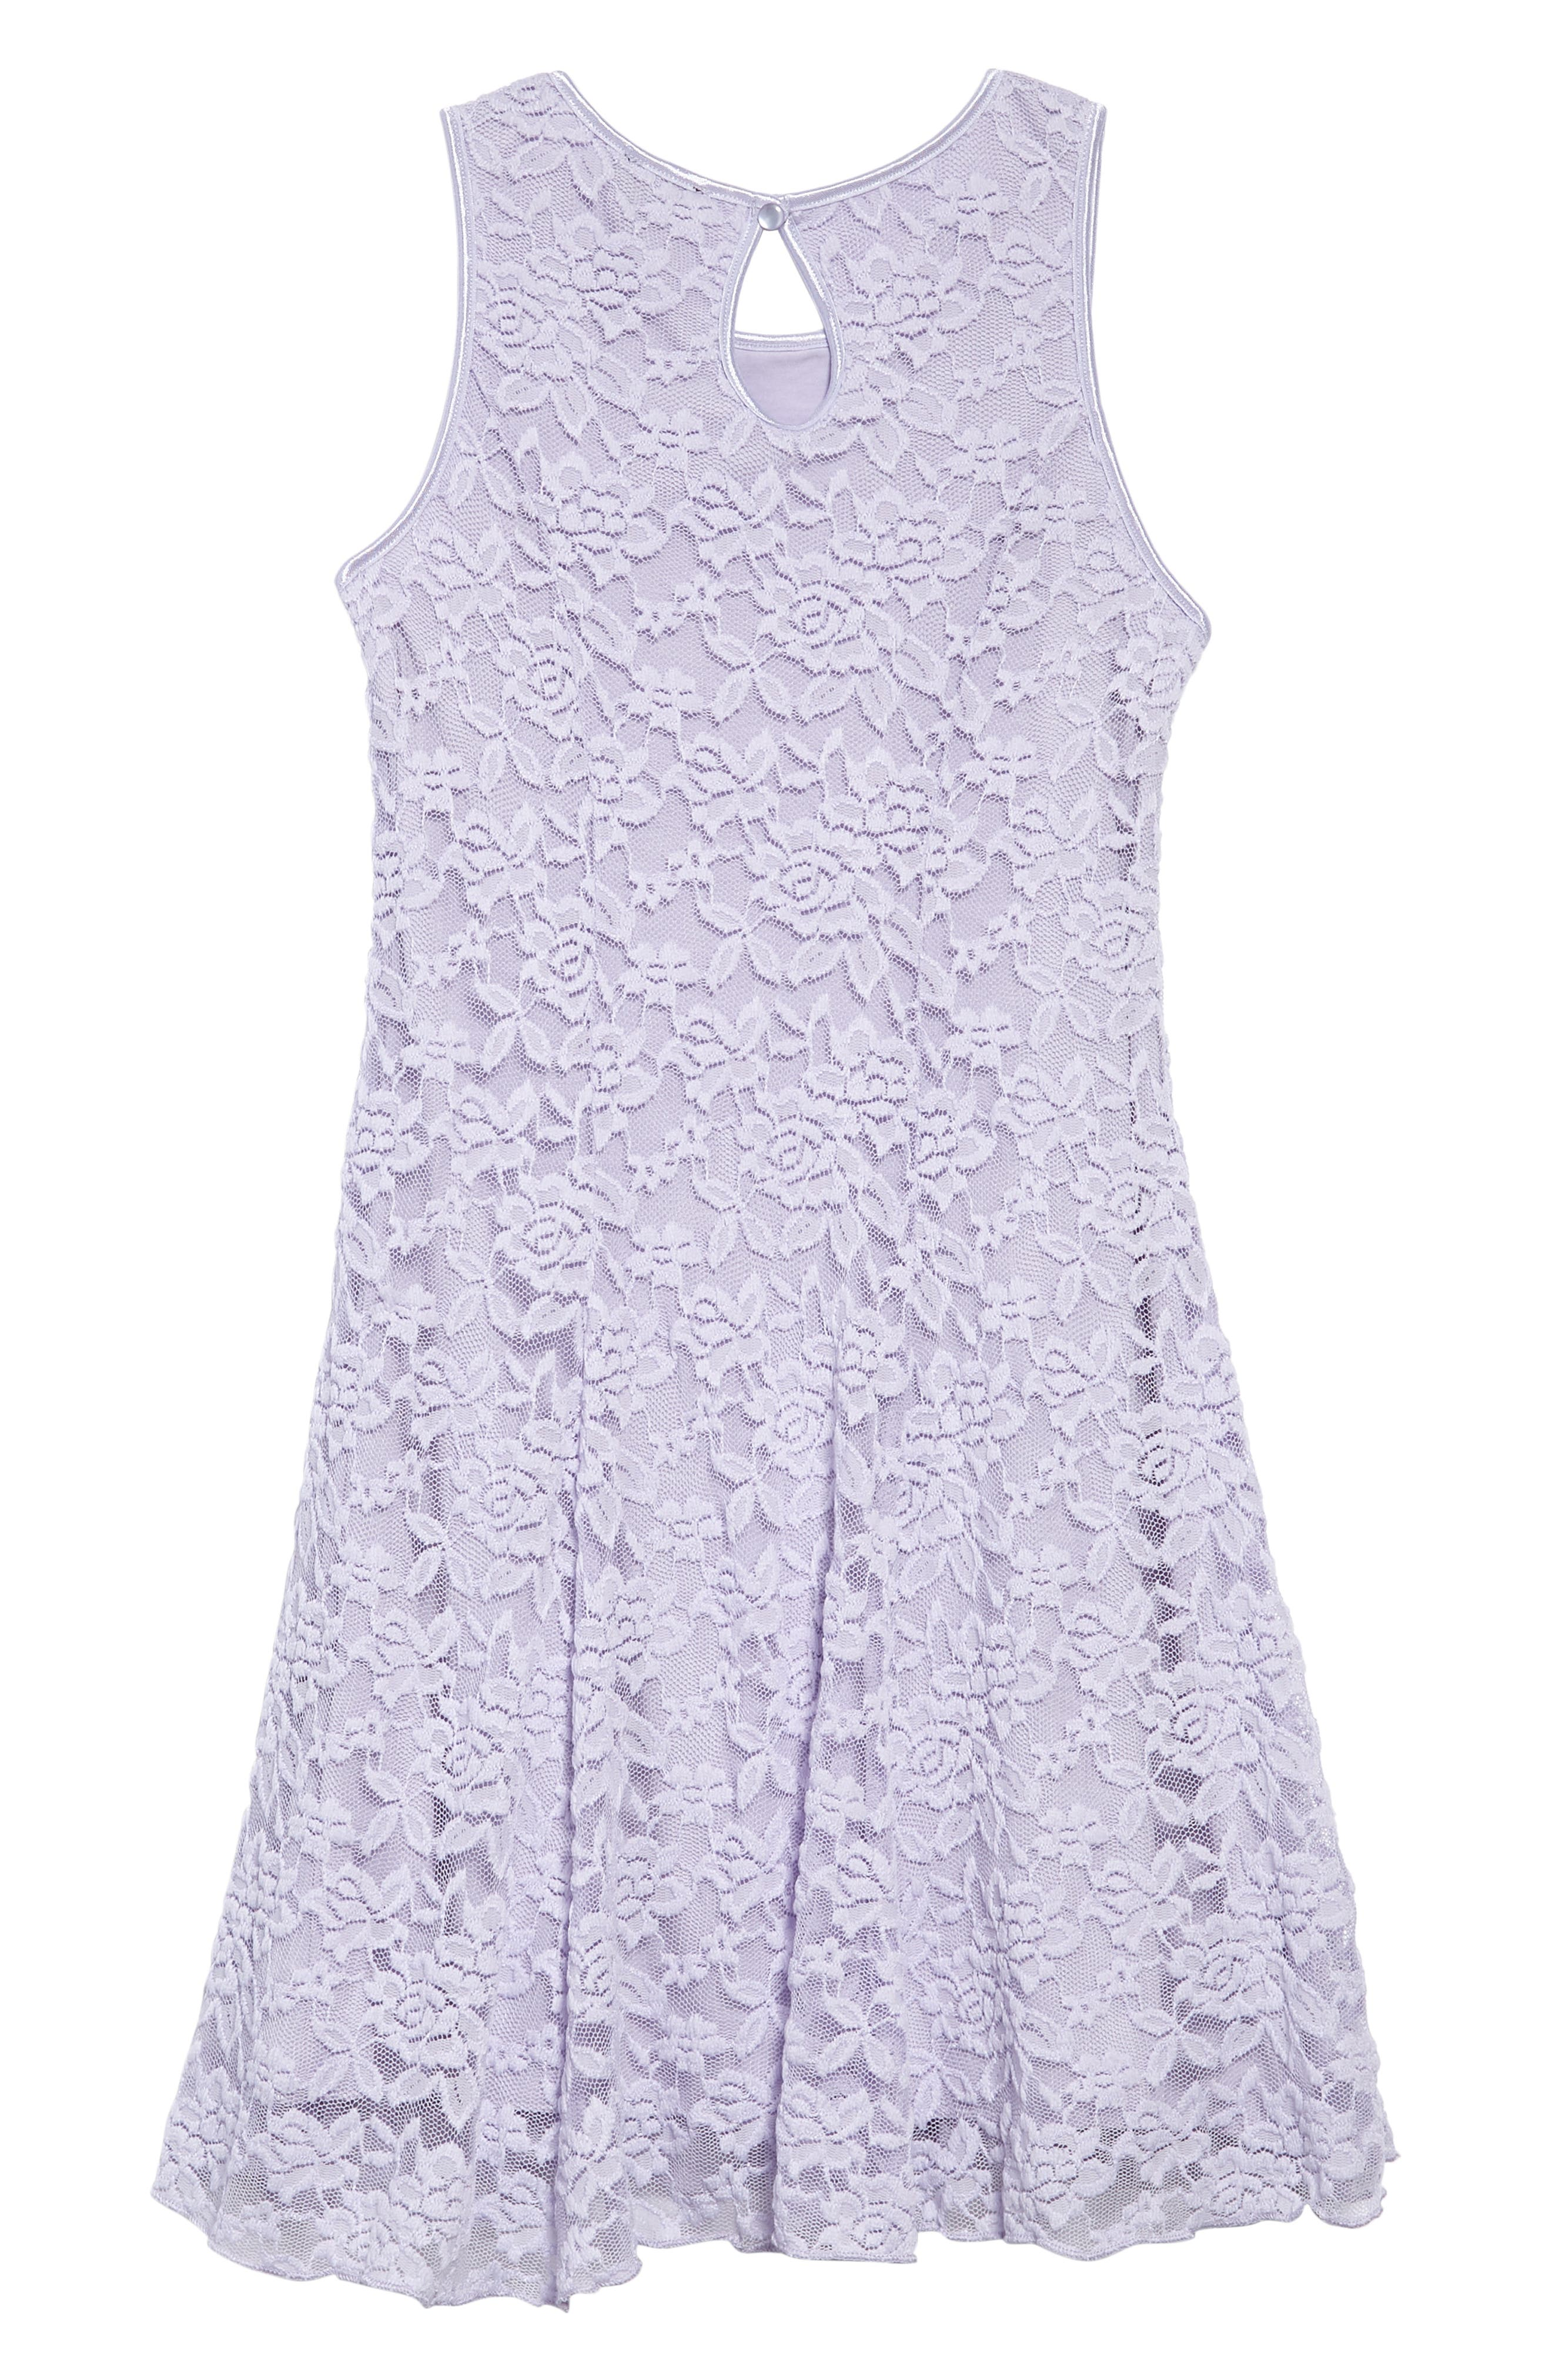 Floral Lace Sleeveless Dress,                             Alternate thumbnail 3, color,                             Lilac